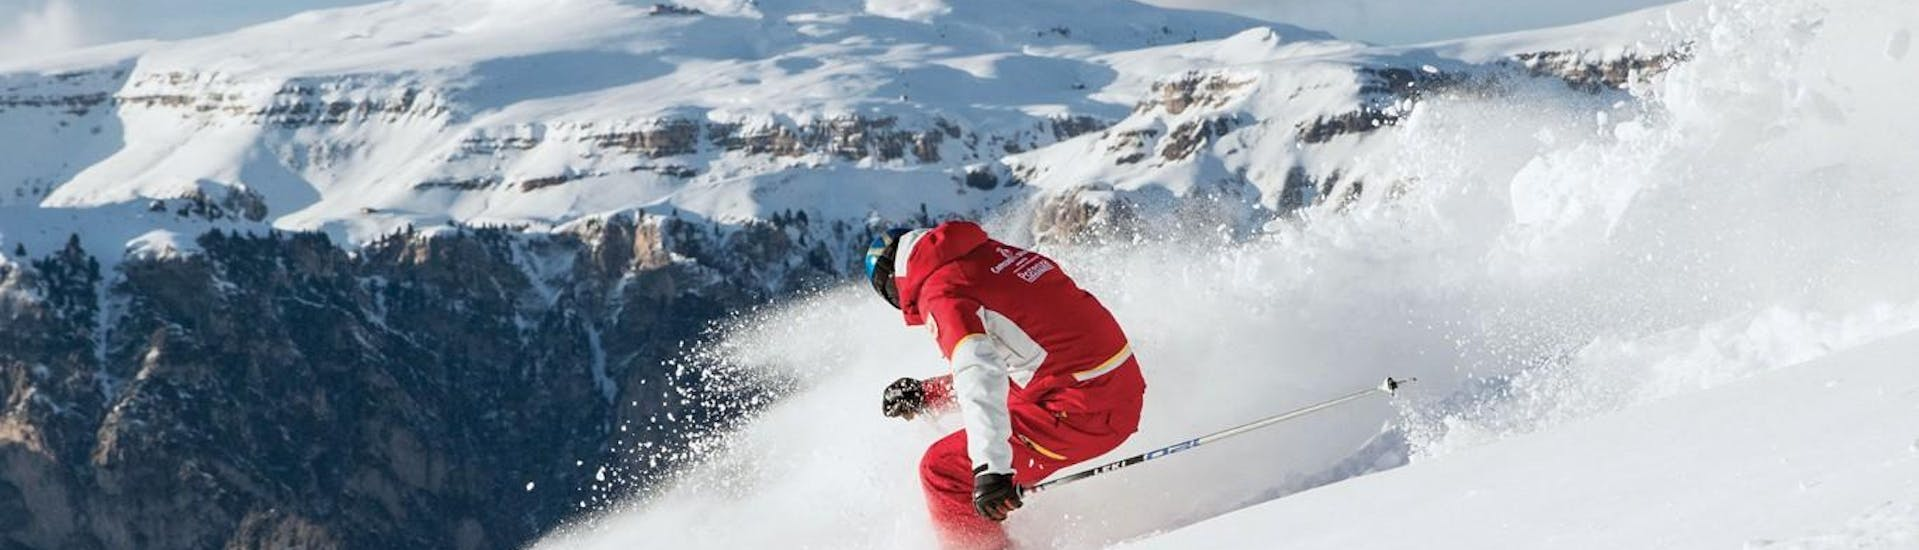 A ski instructor from Carezza Skischool is demonstrating how to ski during Private Ski Lessons for Adults - All Levels.